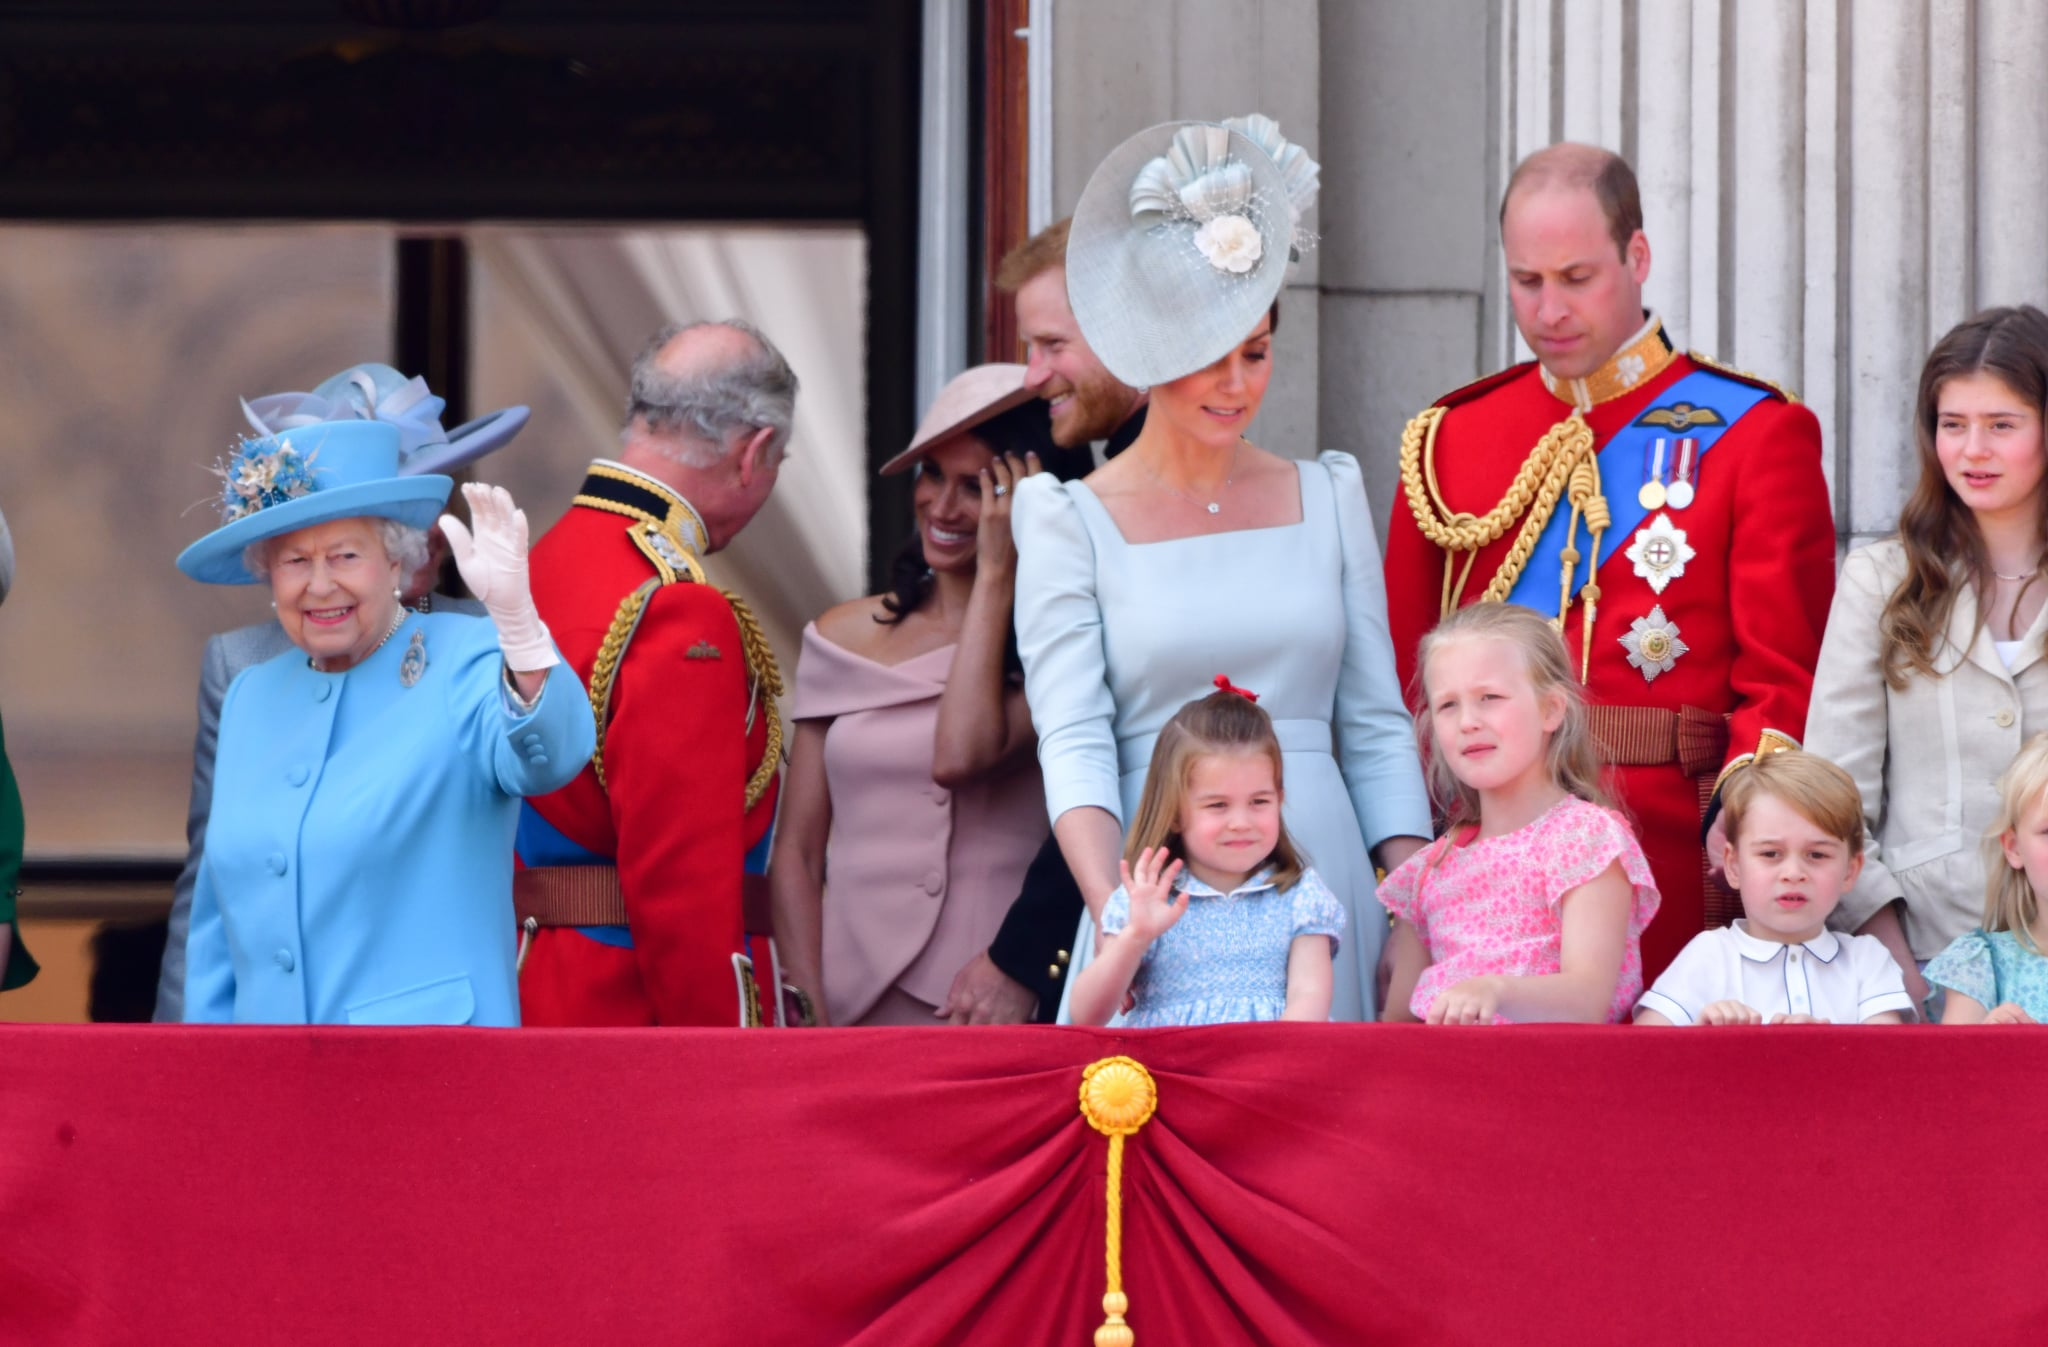 LONDON, ENGLAND - JUNE 09:  Queen Elizabeth II, Prince Charles, Prince of Wales, Meghan, Duchess of Sussex, Prince Harry, Duke of Sussex, Catherine, Duchess of Cambridge, Prince William, Duke of Cambridge, Princess Charlotte of Cambridge, Savannah Phillips and Prince George of Cambridge stand on the balcony of Buckingham Palace during the Trooping the Colour parade on June 9, 2018 in London, England.  (Photo by James Devaney/FilmMagic)